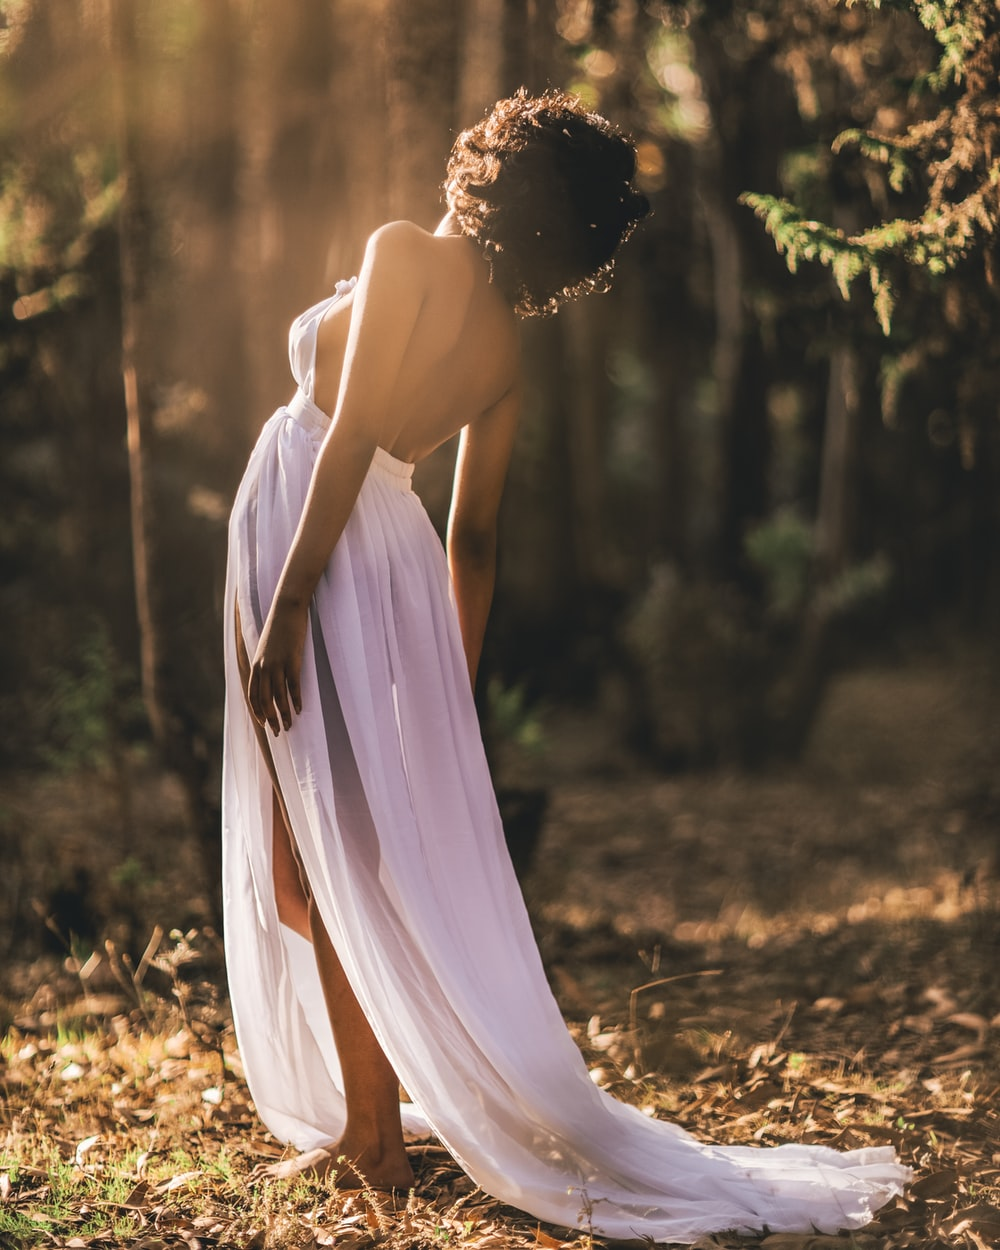 woman in white dress standing on brown dried leaves during daytime